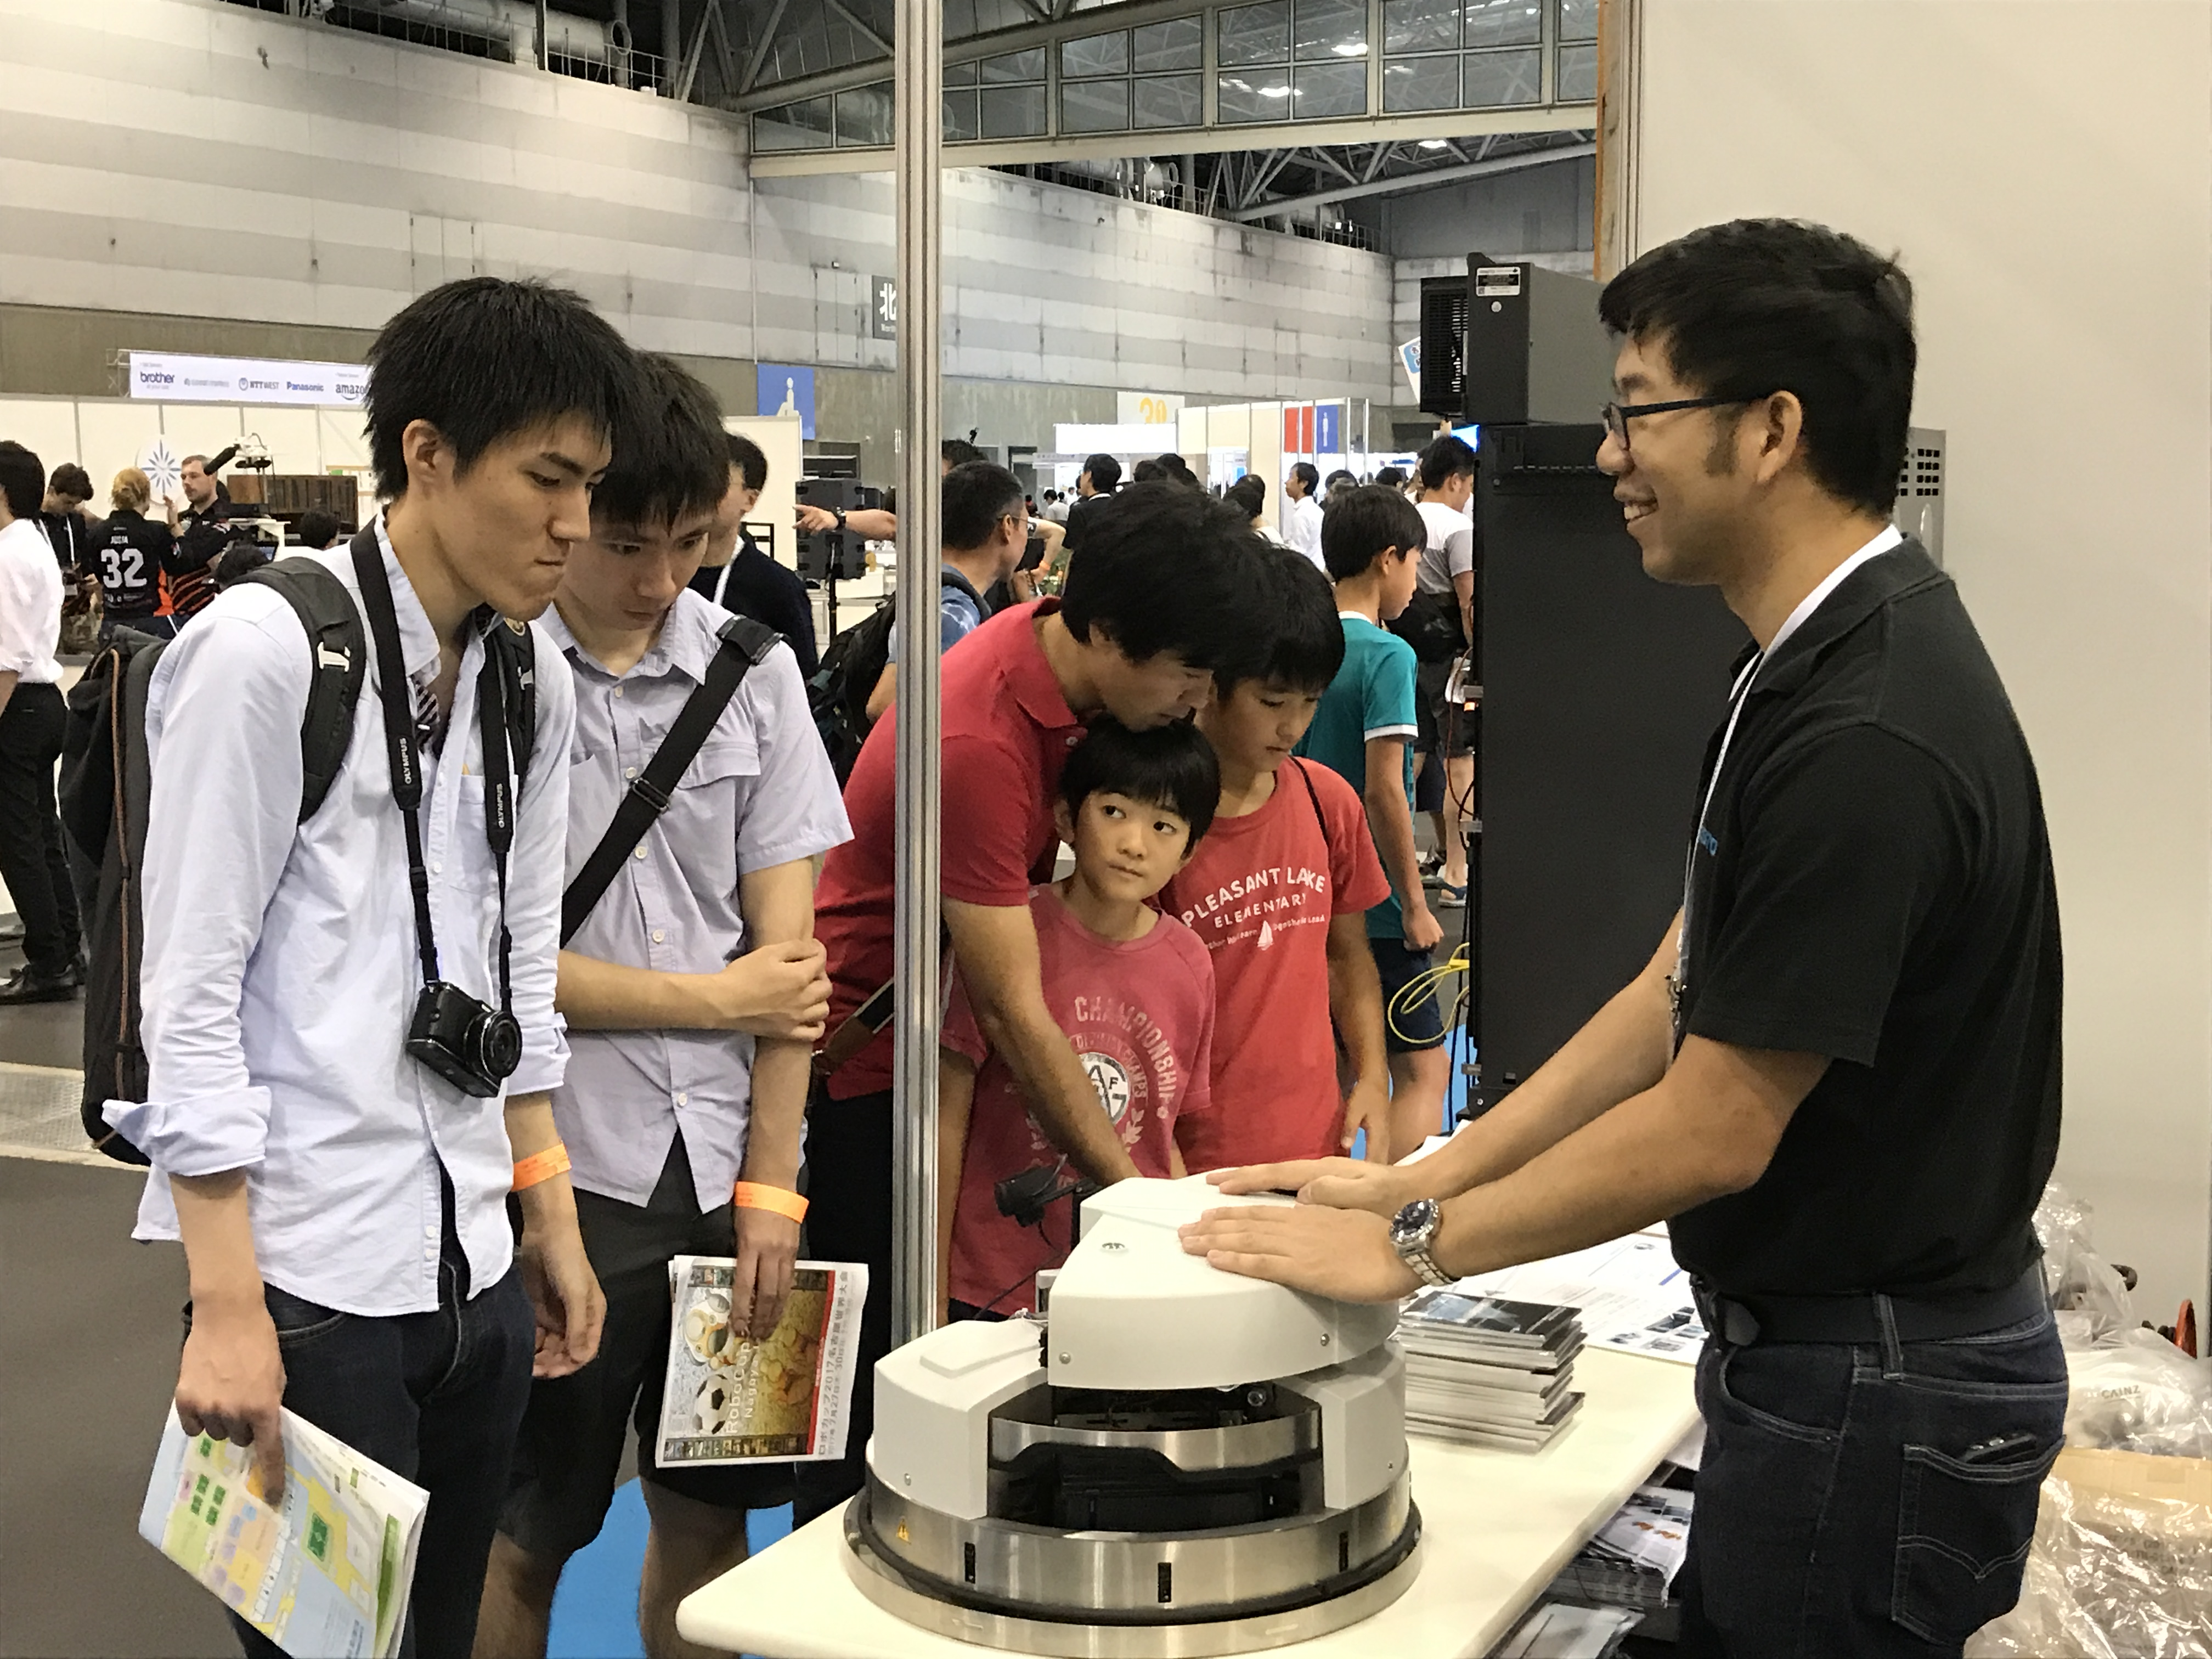 robocup2017booth1.JPG